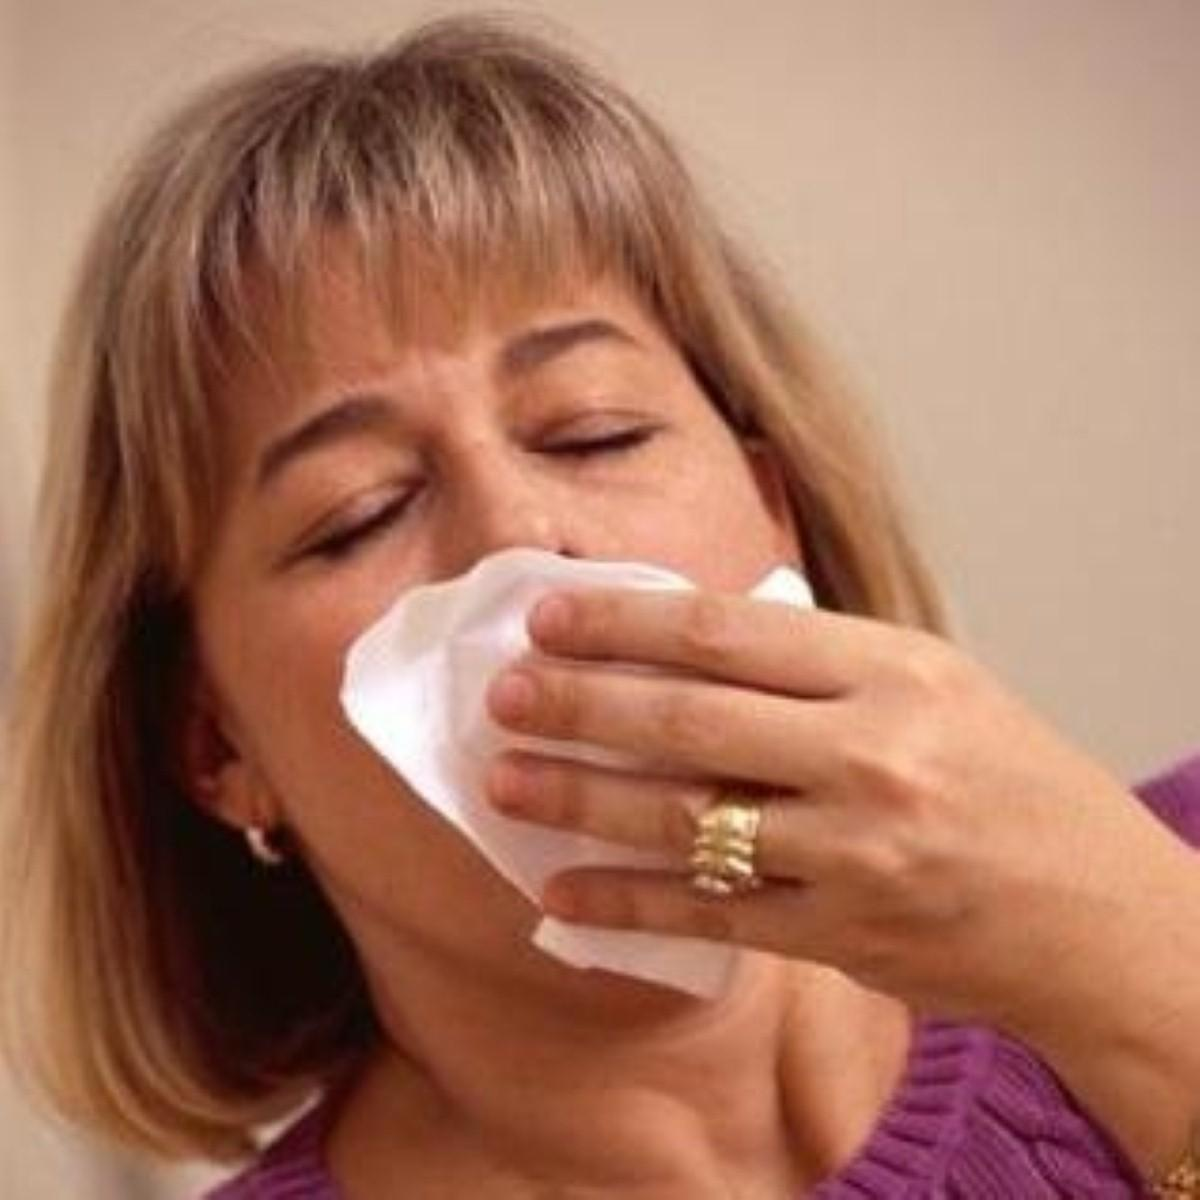 Flu rates 'more than doubled in past week'